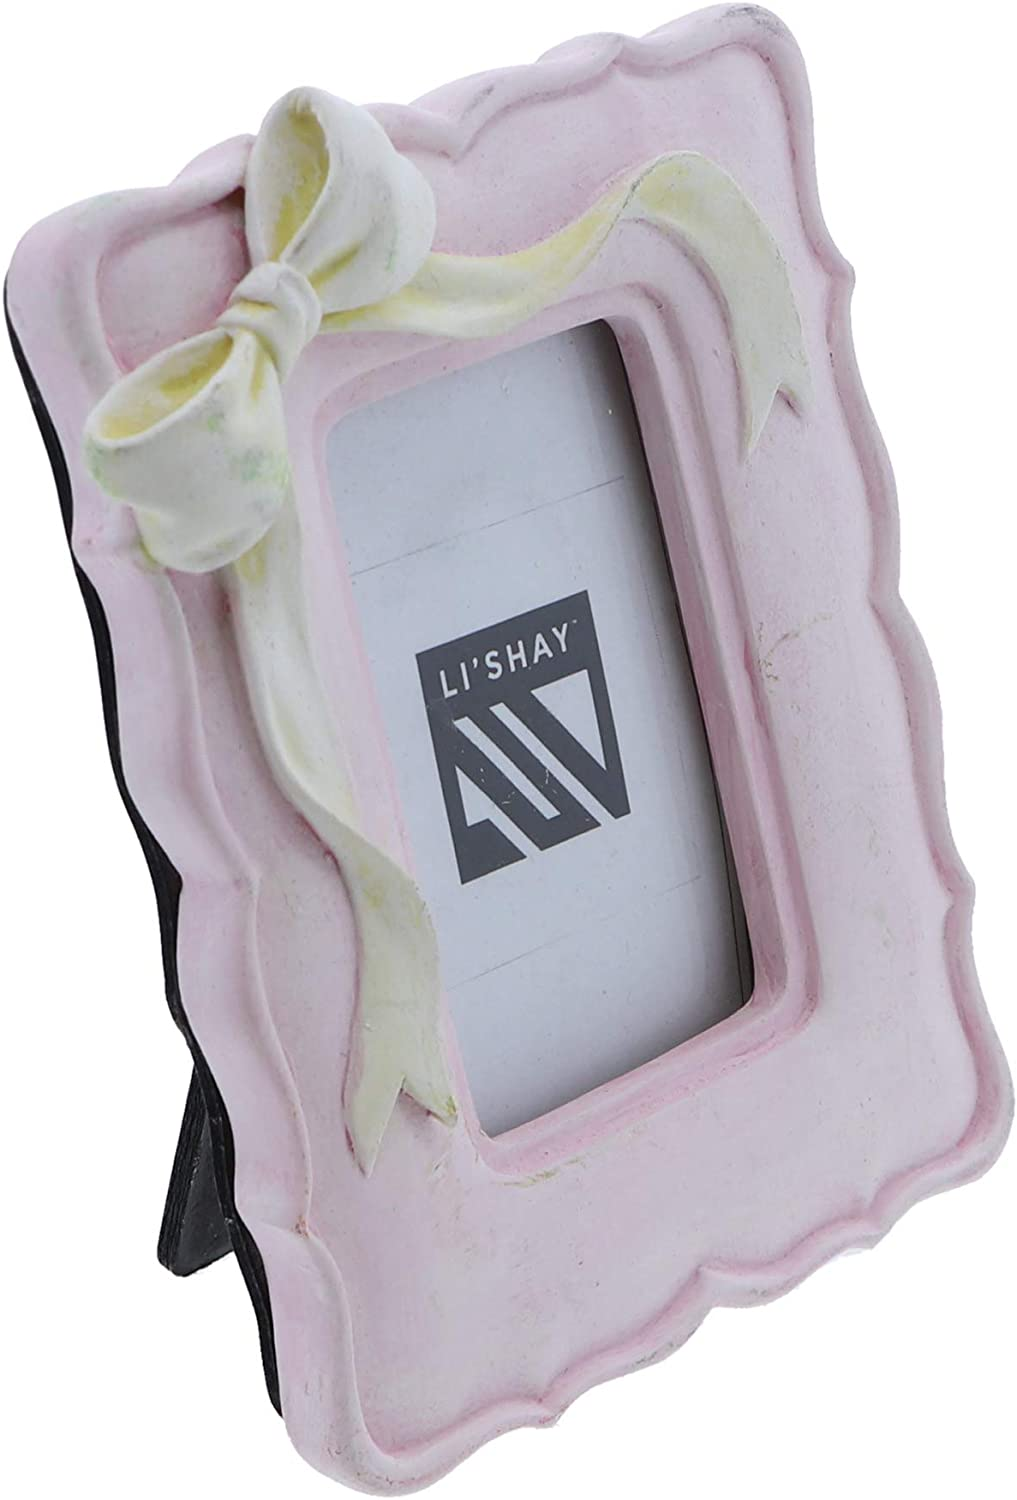 Baby Photo Frame with Bow for Pictures 2 x 3 Pink